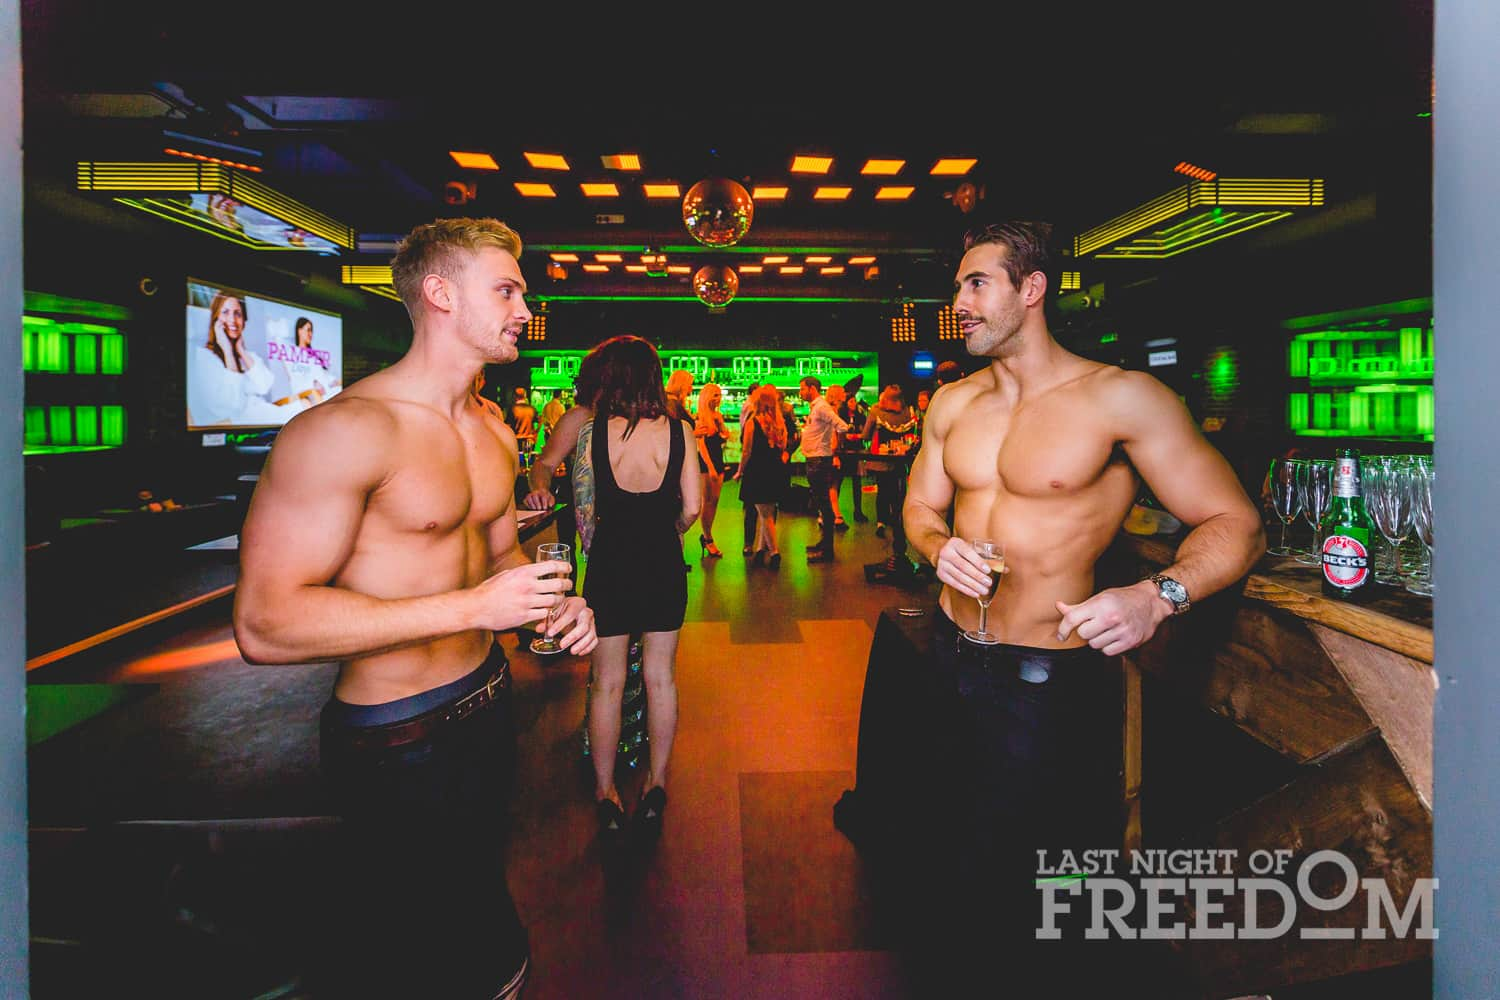 Two semi-naked men chatting in a bar, with other people stood around in the background